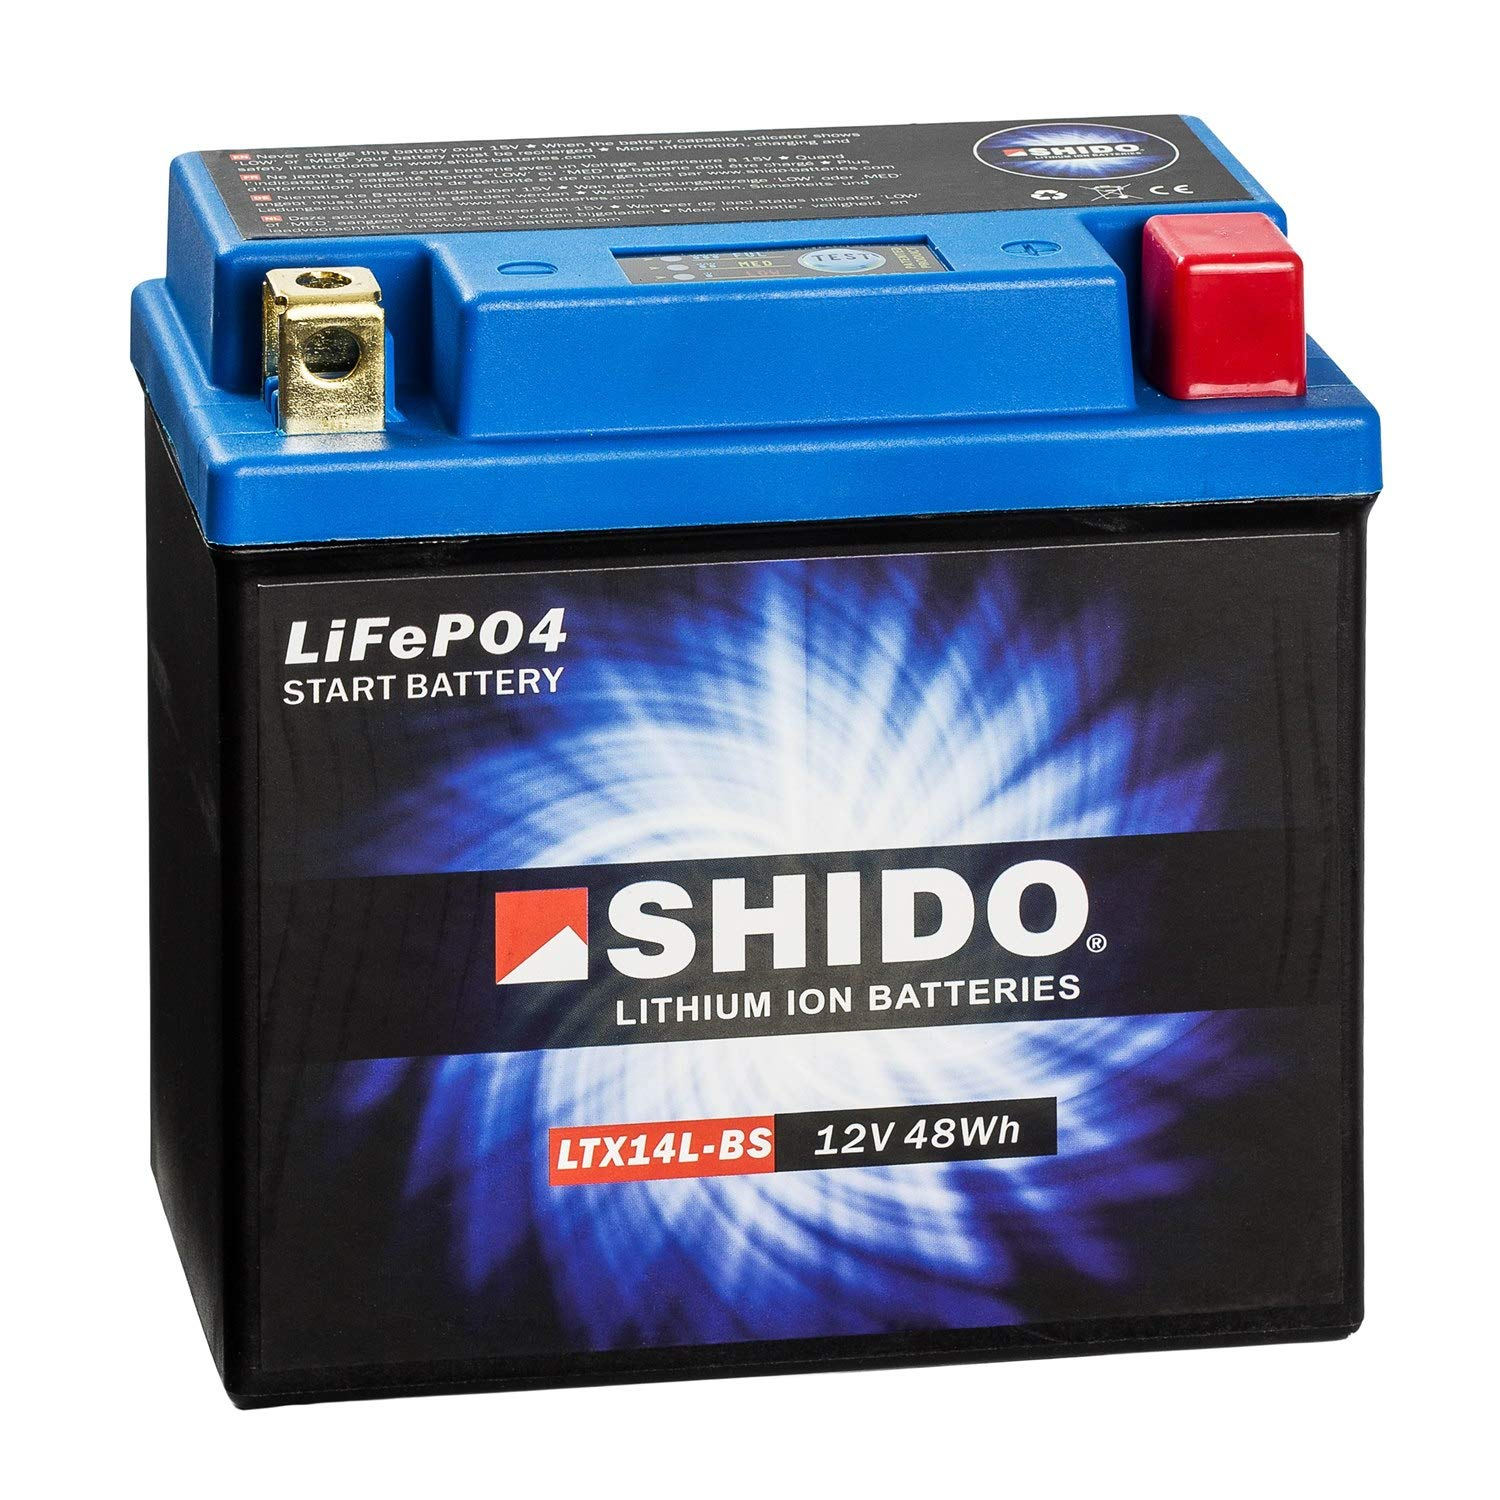 SHIDO LTX14L-BS LION -S- Lithium-Ion Battery-Blue